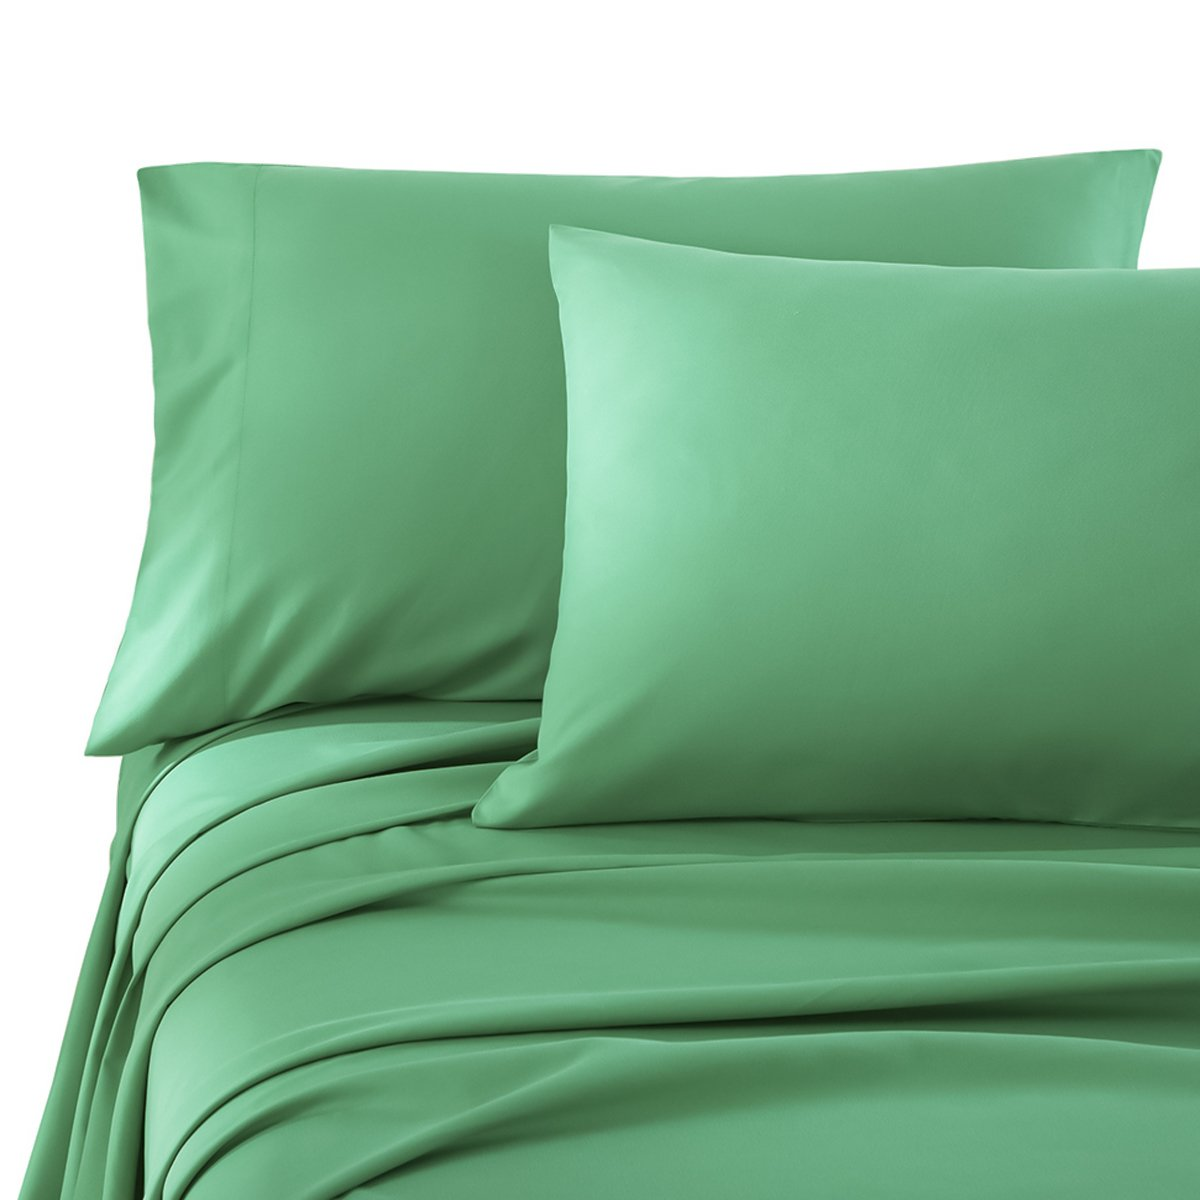 Honeymoon Brushed Microfiber Twin Bed Sheet Set, Turquoise